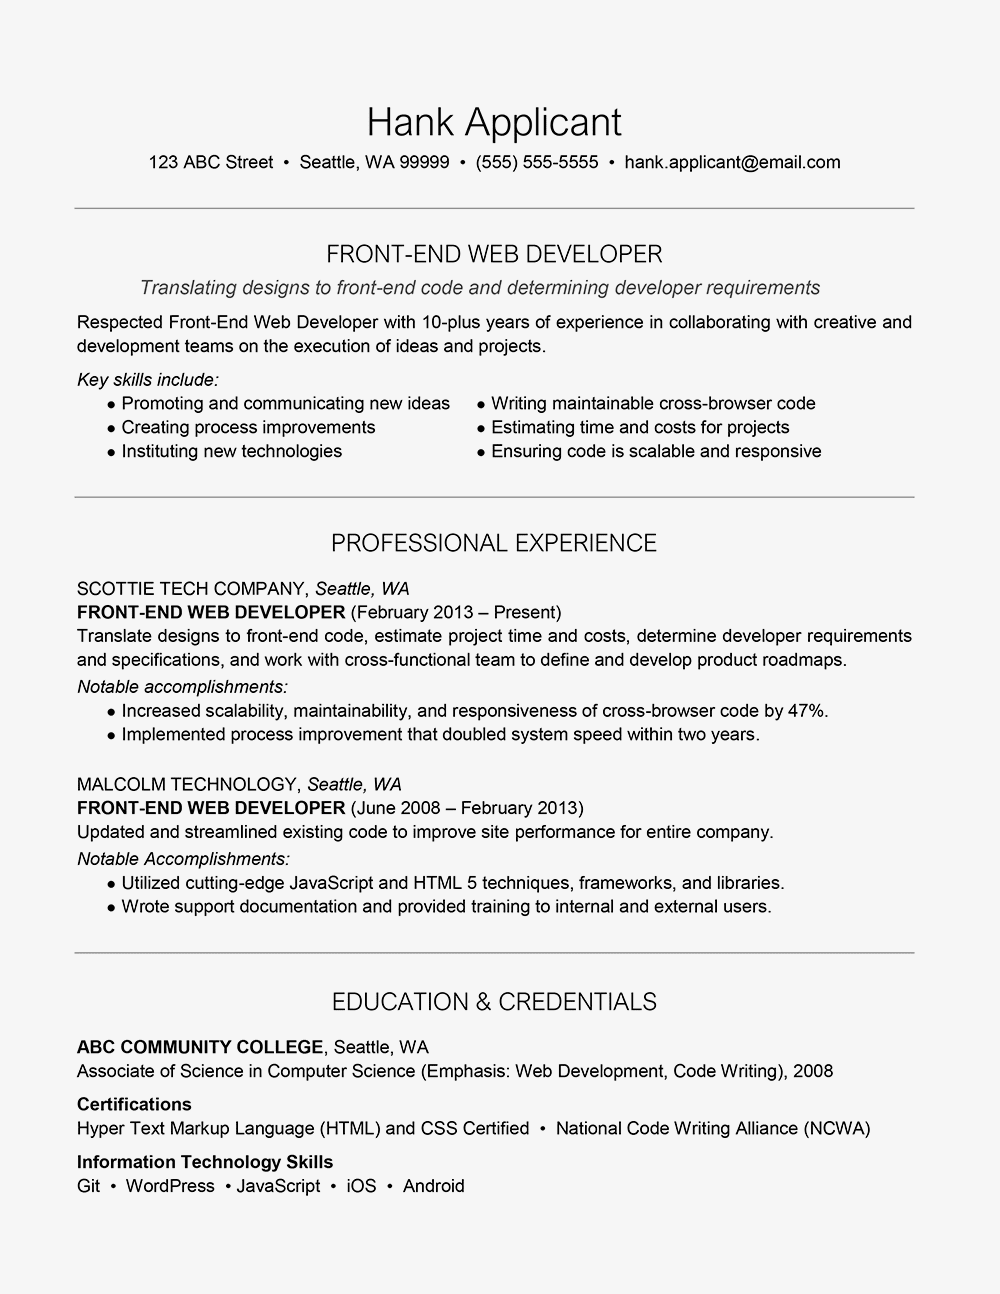 Sample Cover Letter For A Front End Web Developer